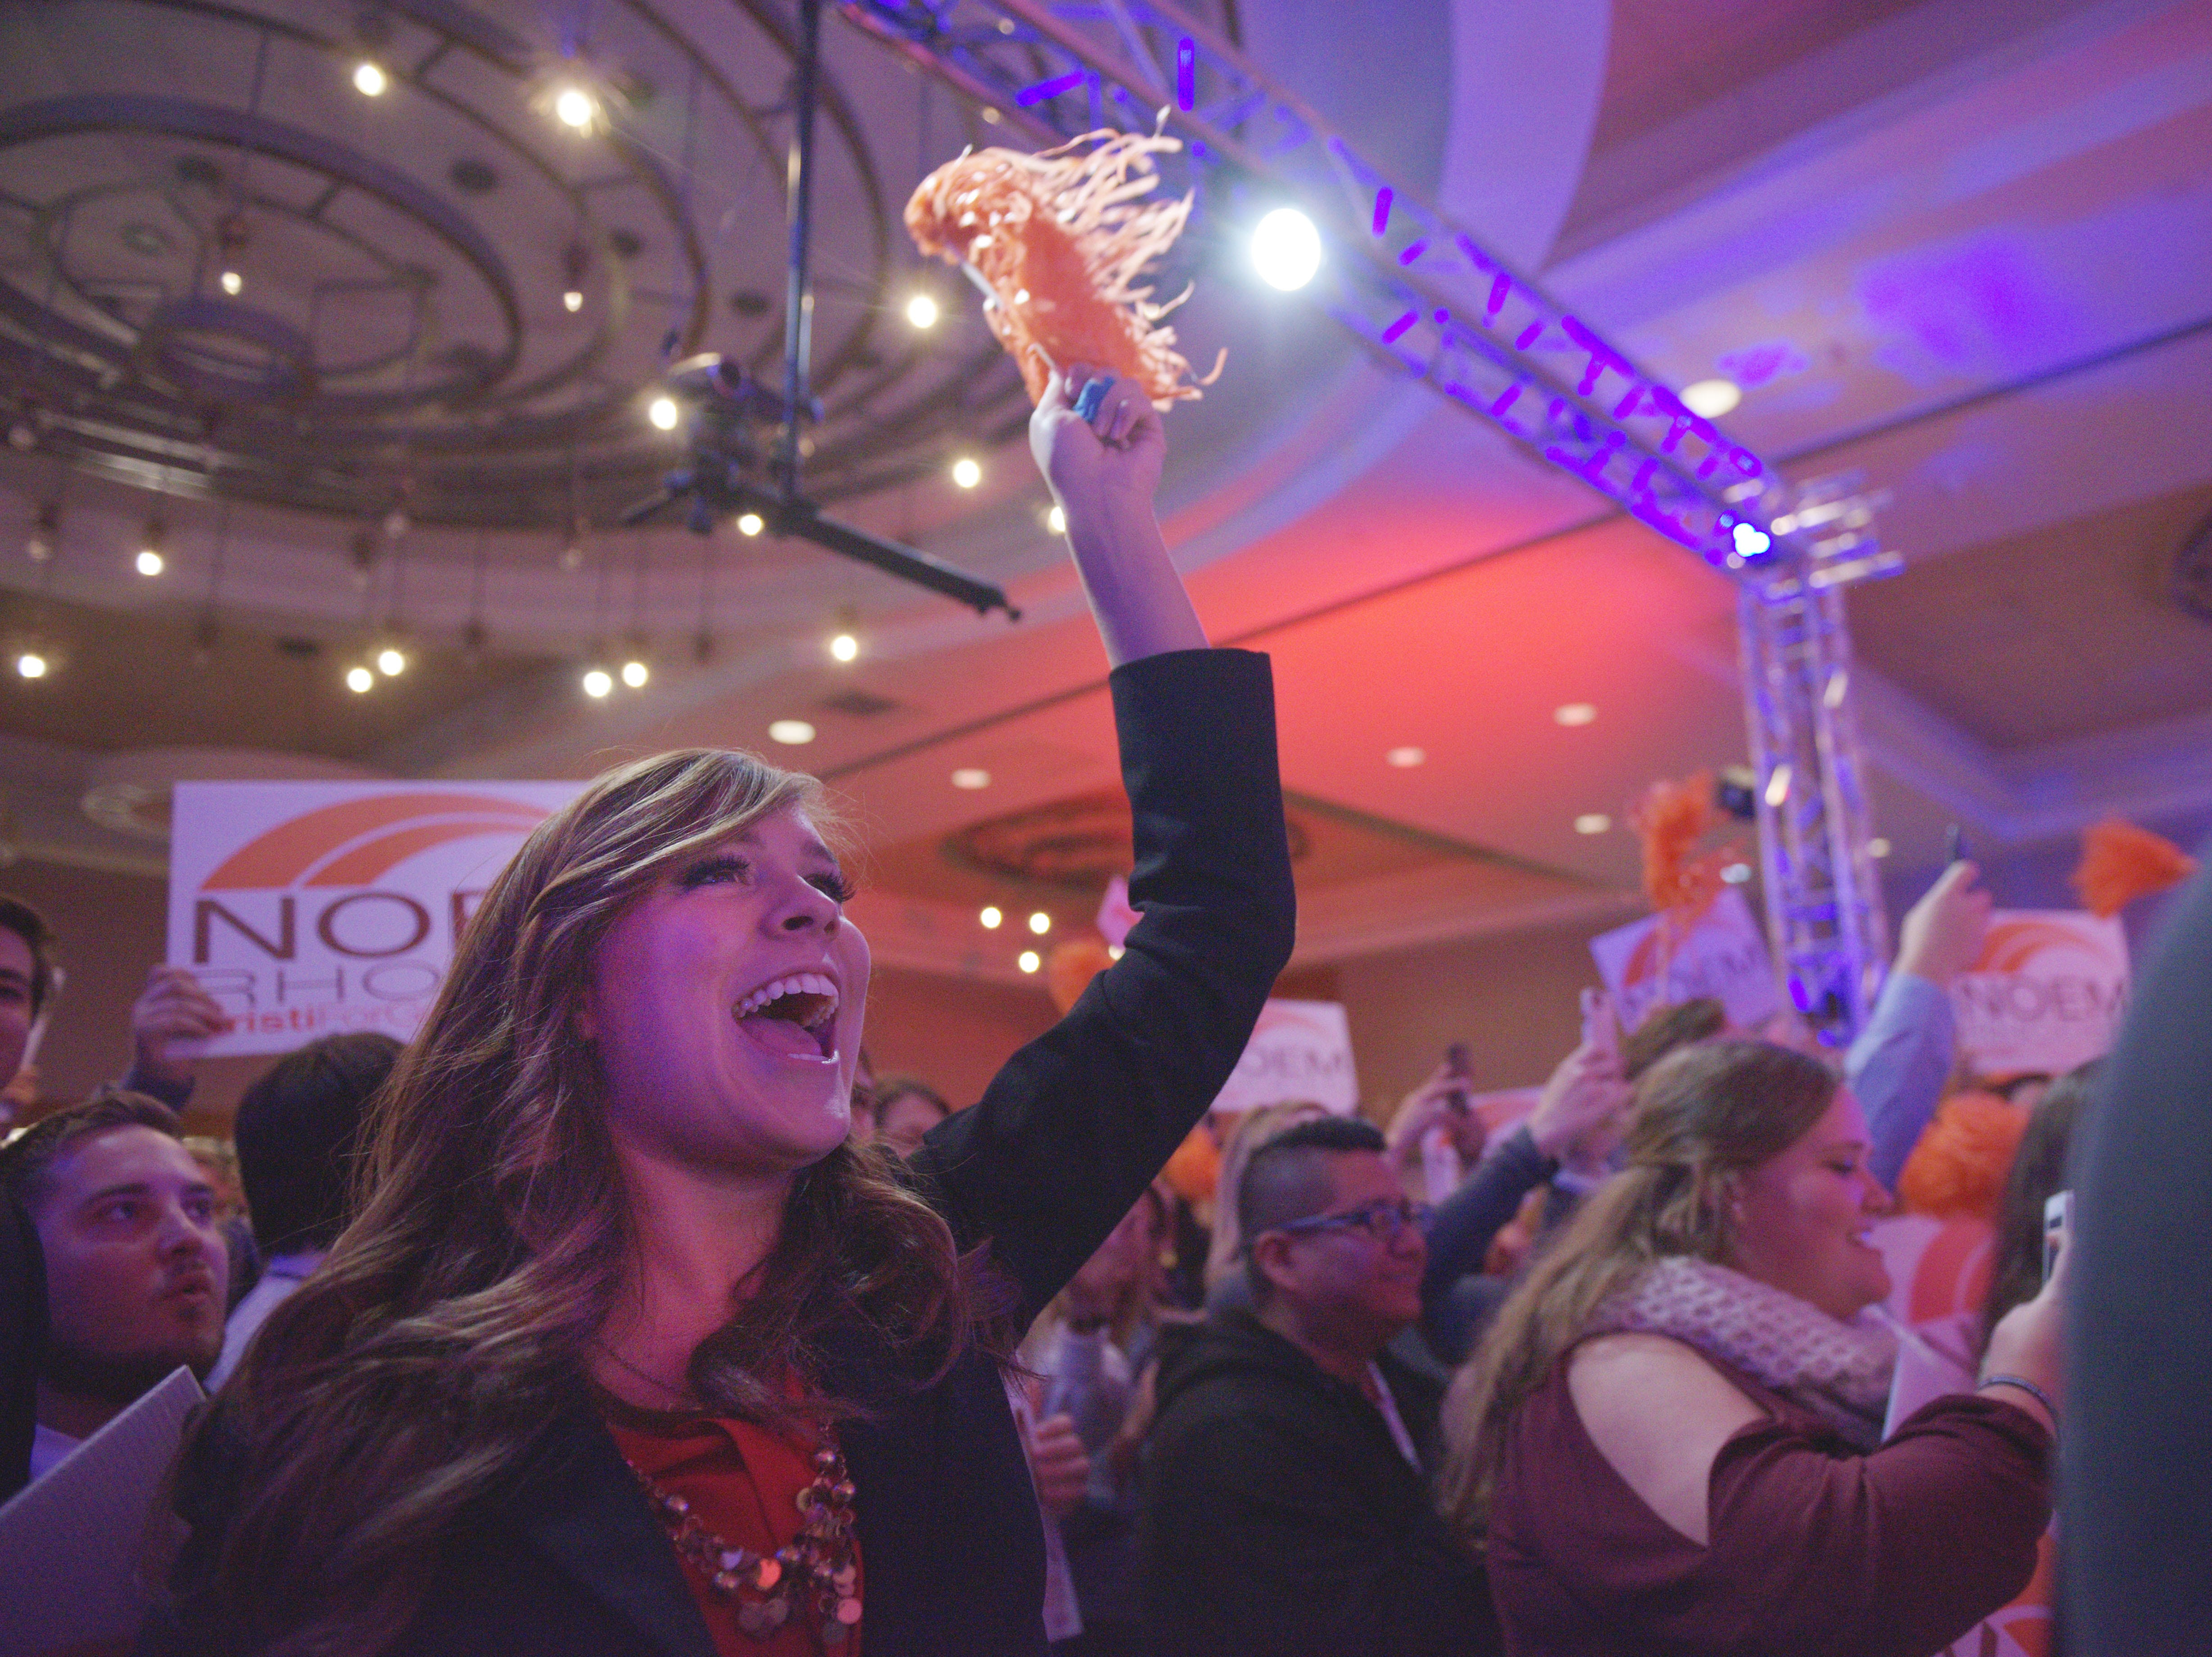 Kristi Noem address supporters while she makes her acceptance speech after being announced the new governor of South Dakota Tuesday, Nov. 6, at the Hilton Garden Inn in Sioux Falls. Noem mad history by being the first female governor of South Dakota.